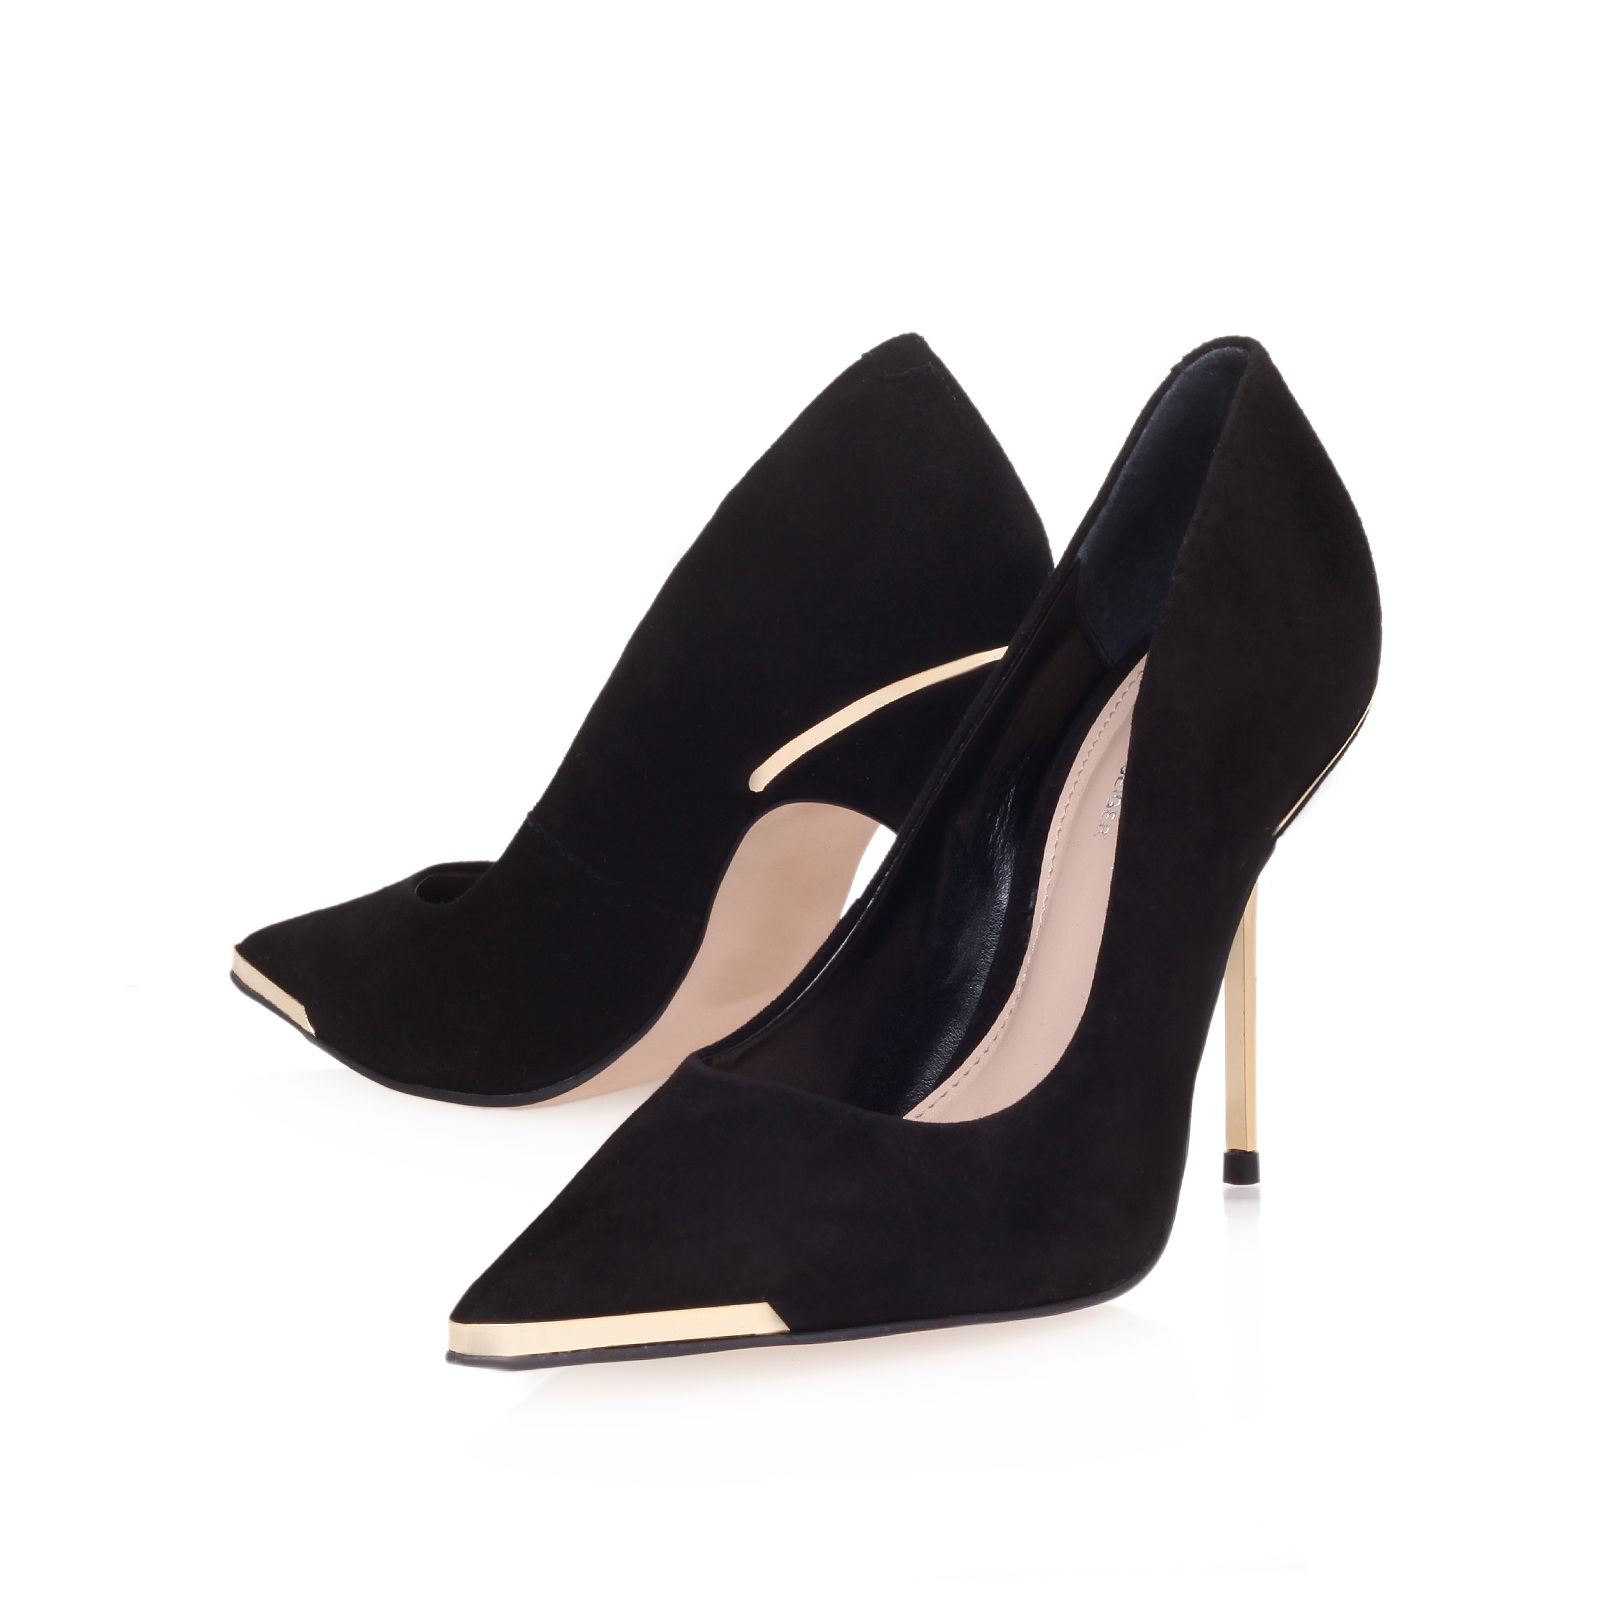 Adara high heel court shoes